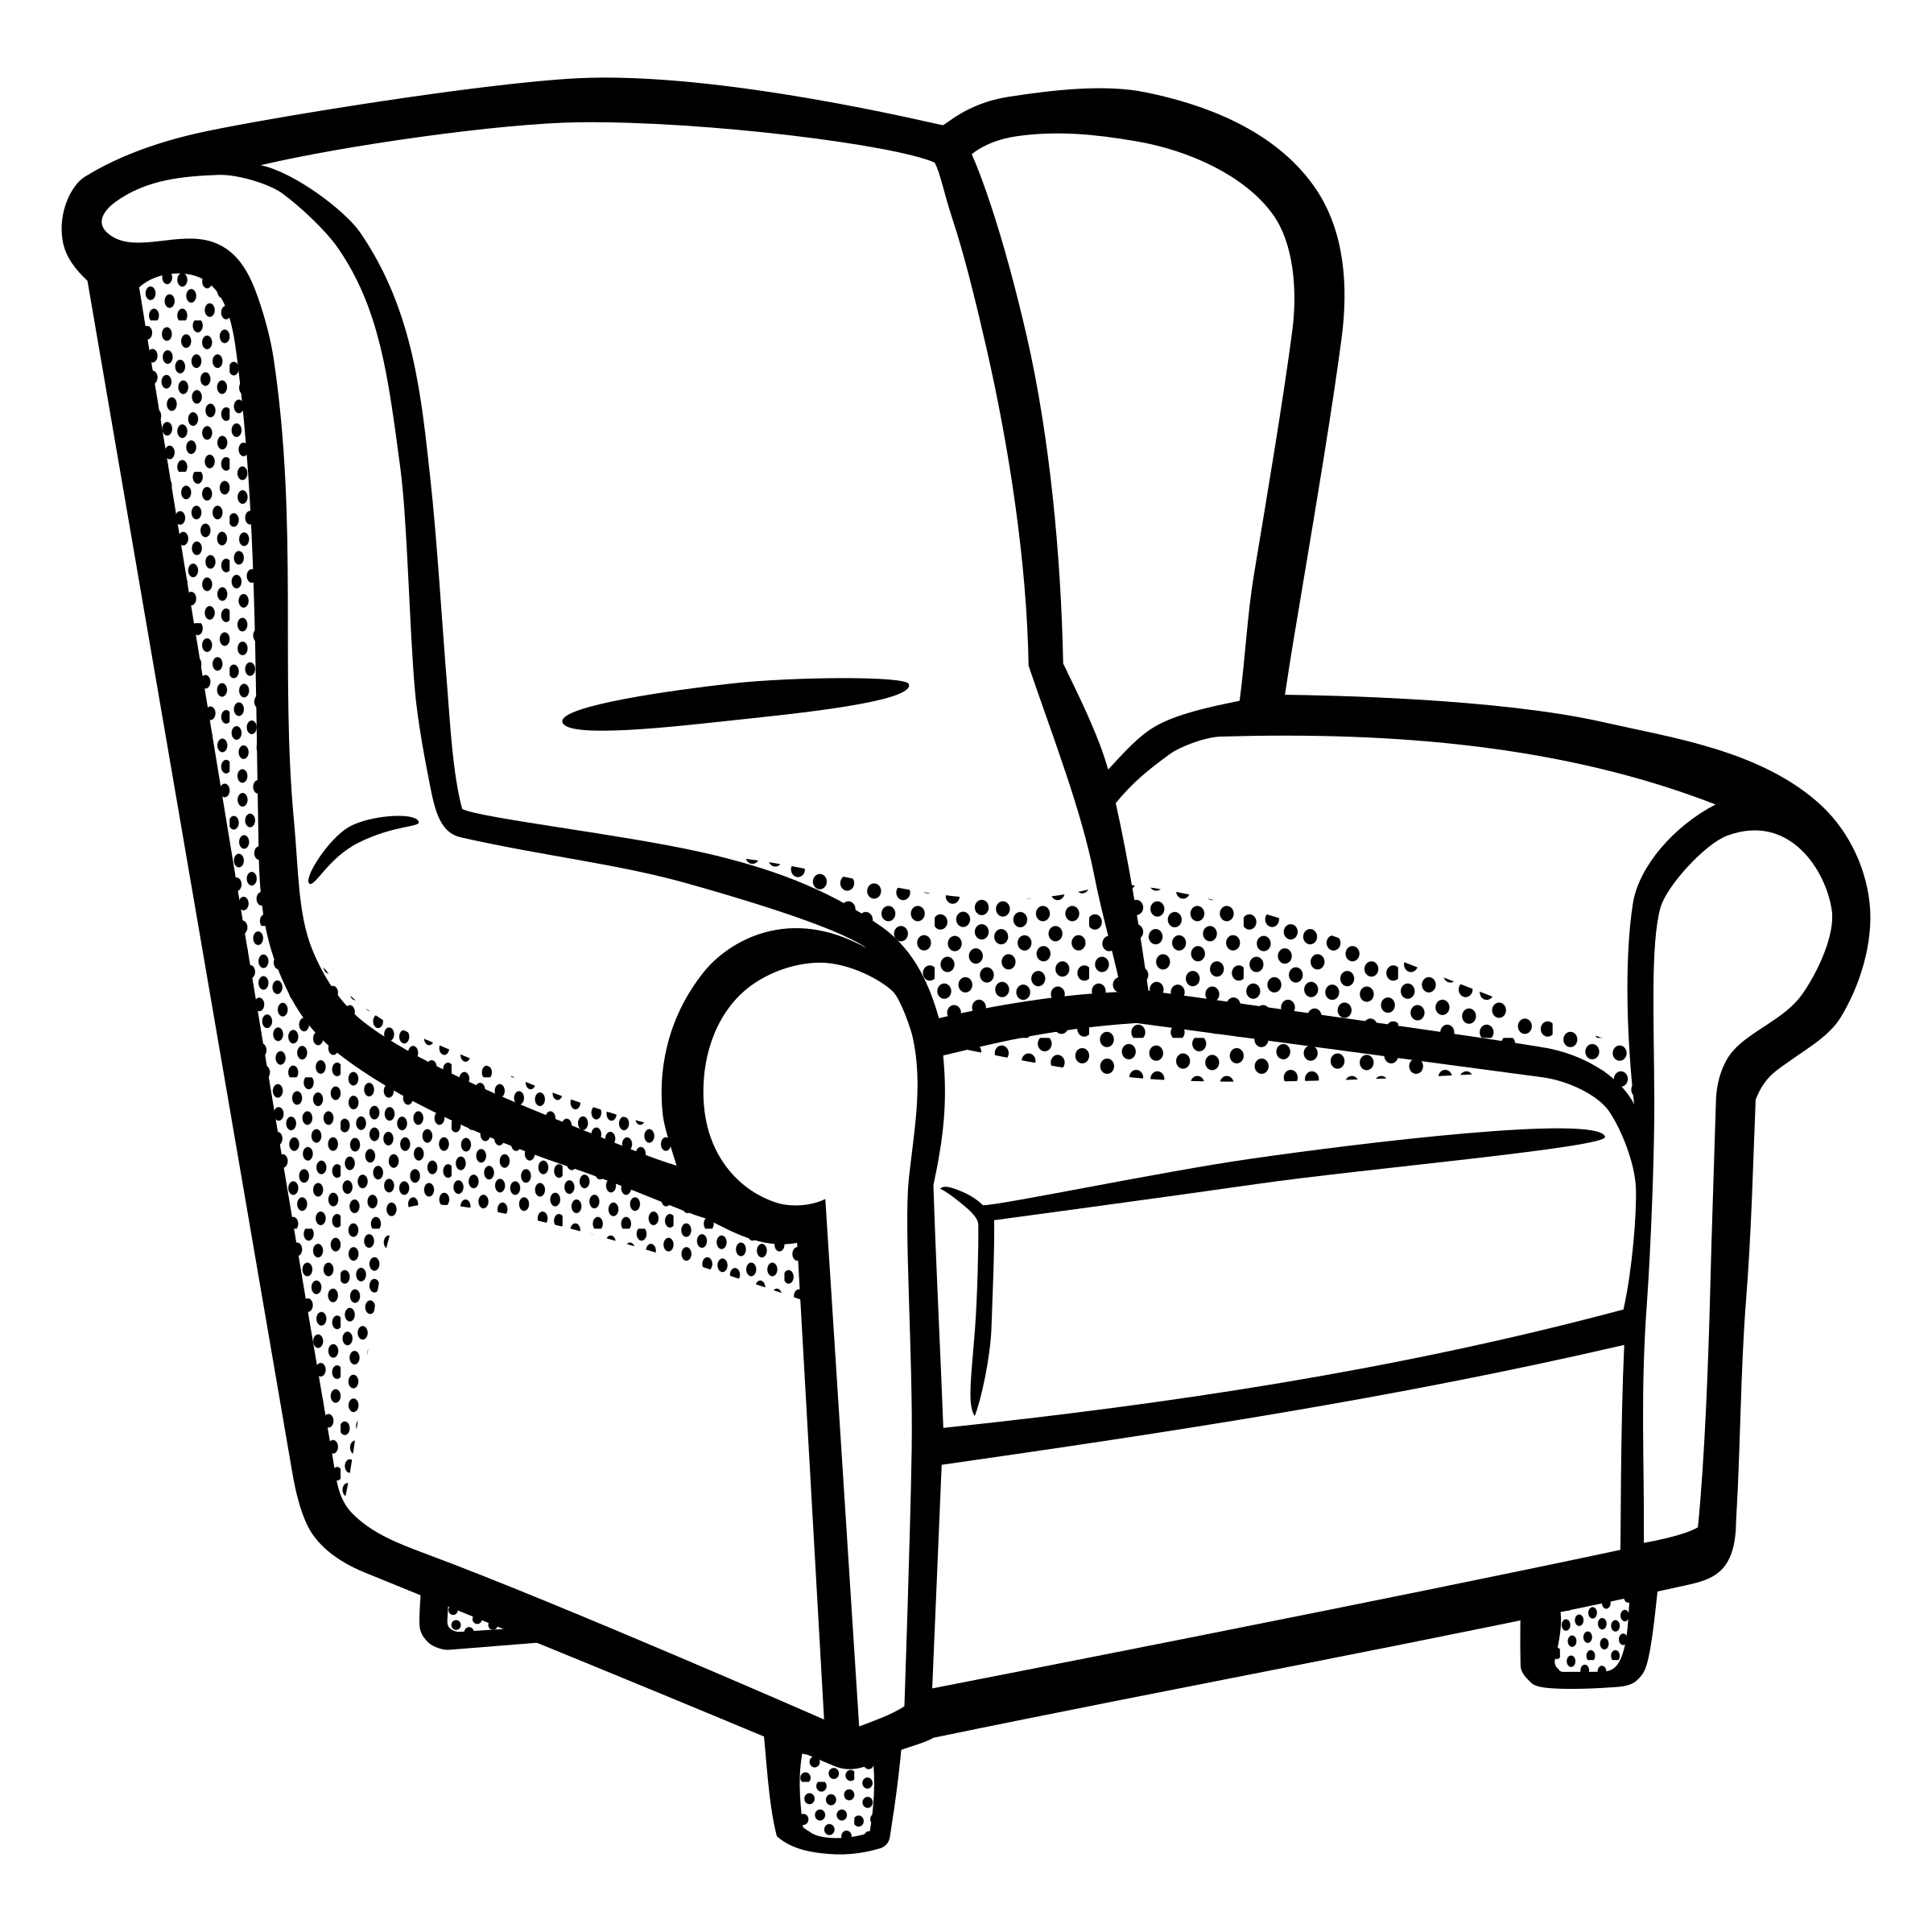 Sessel clipart  Clipart - armchair - lineart